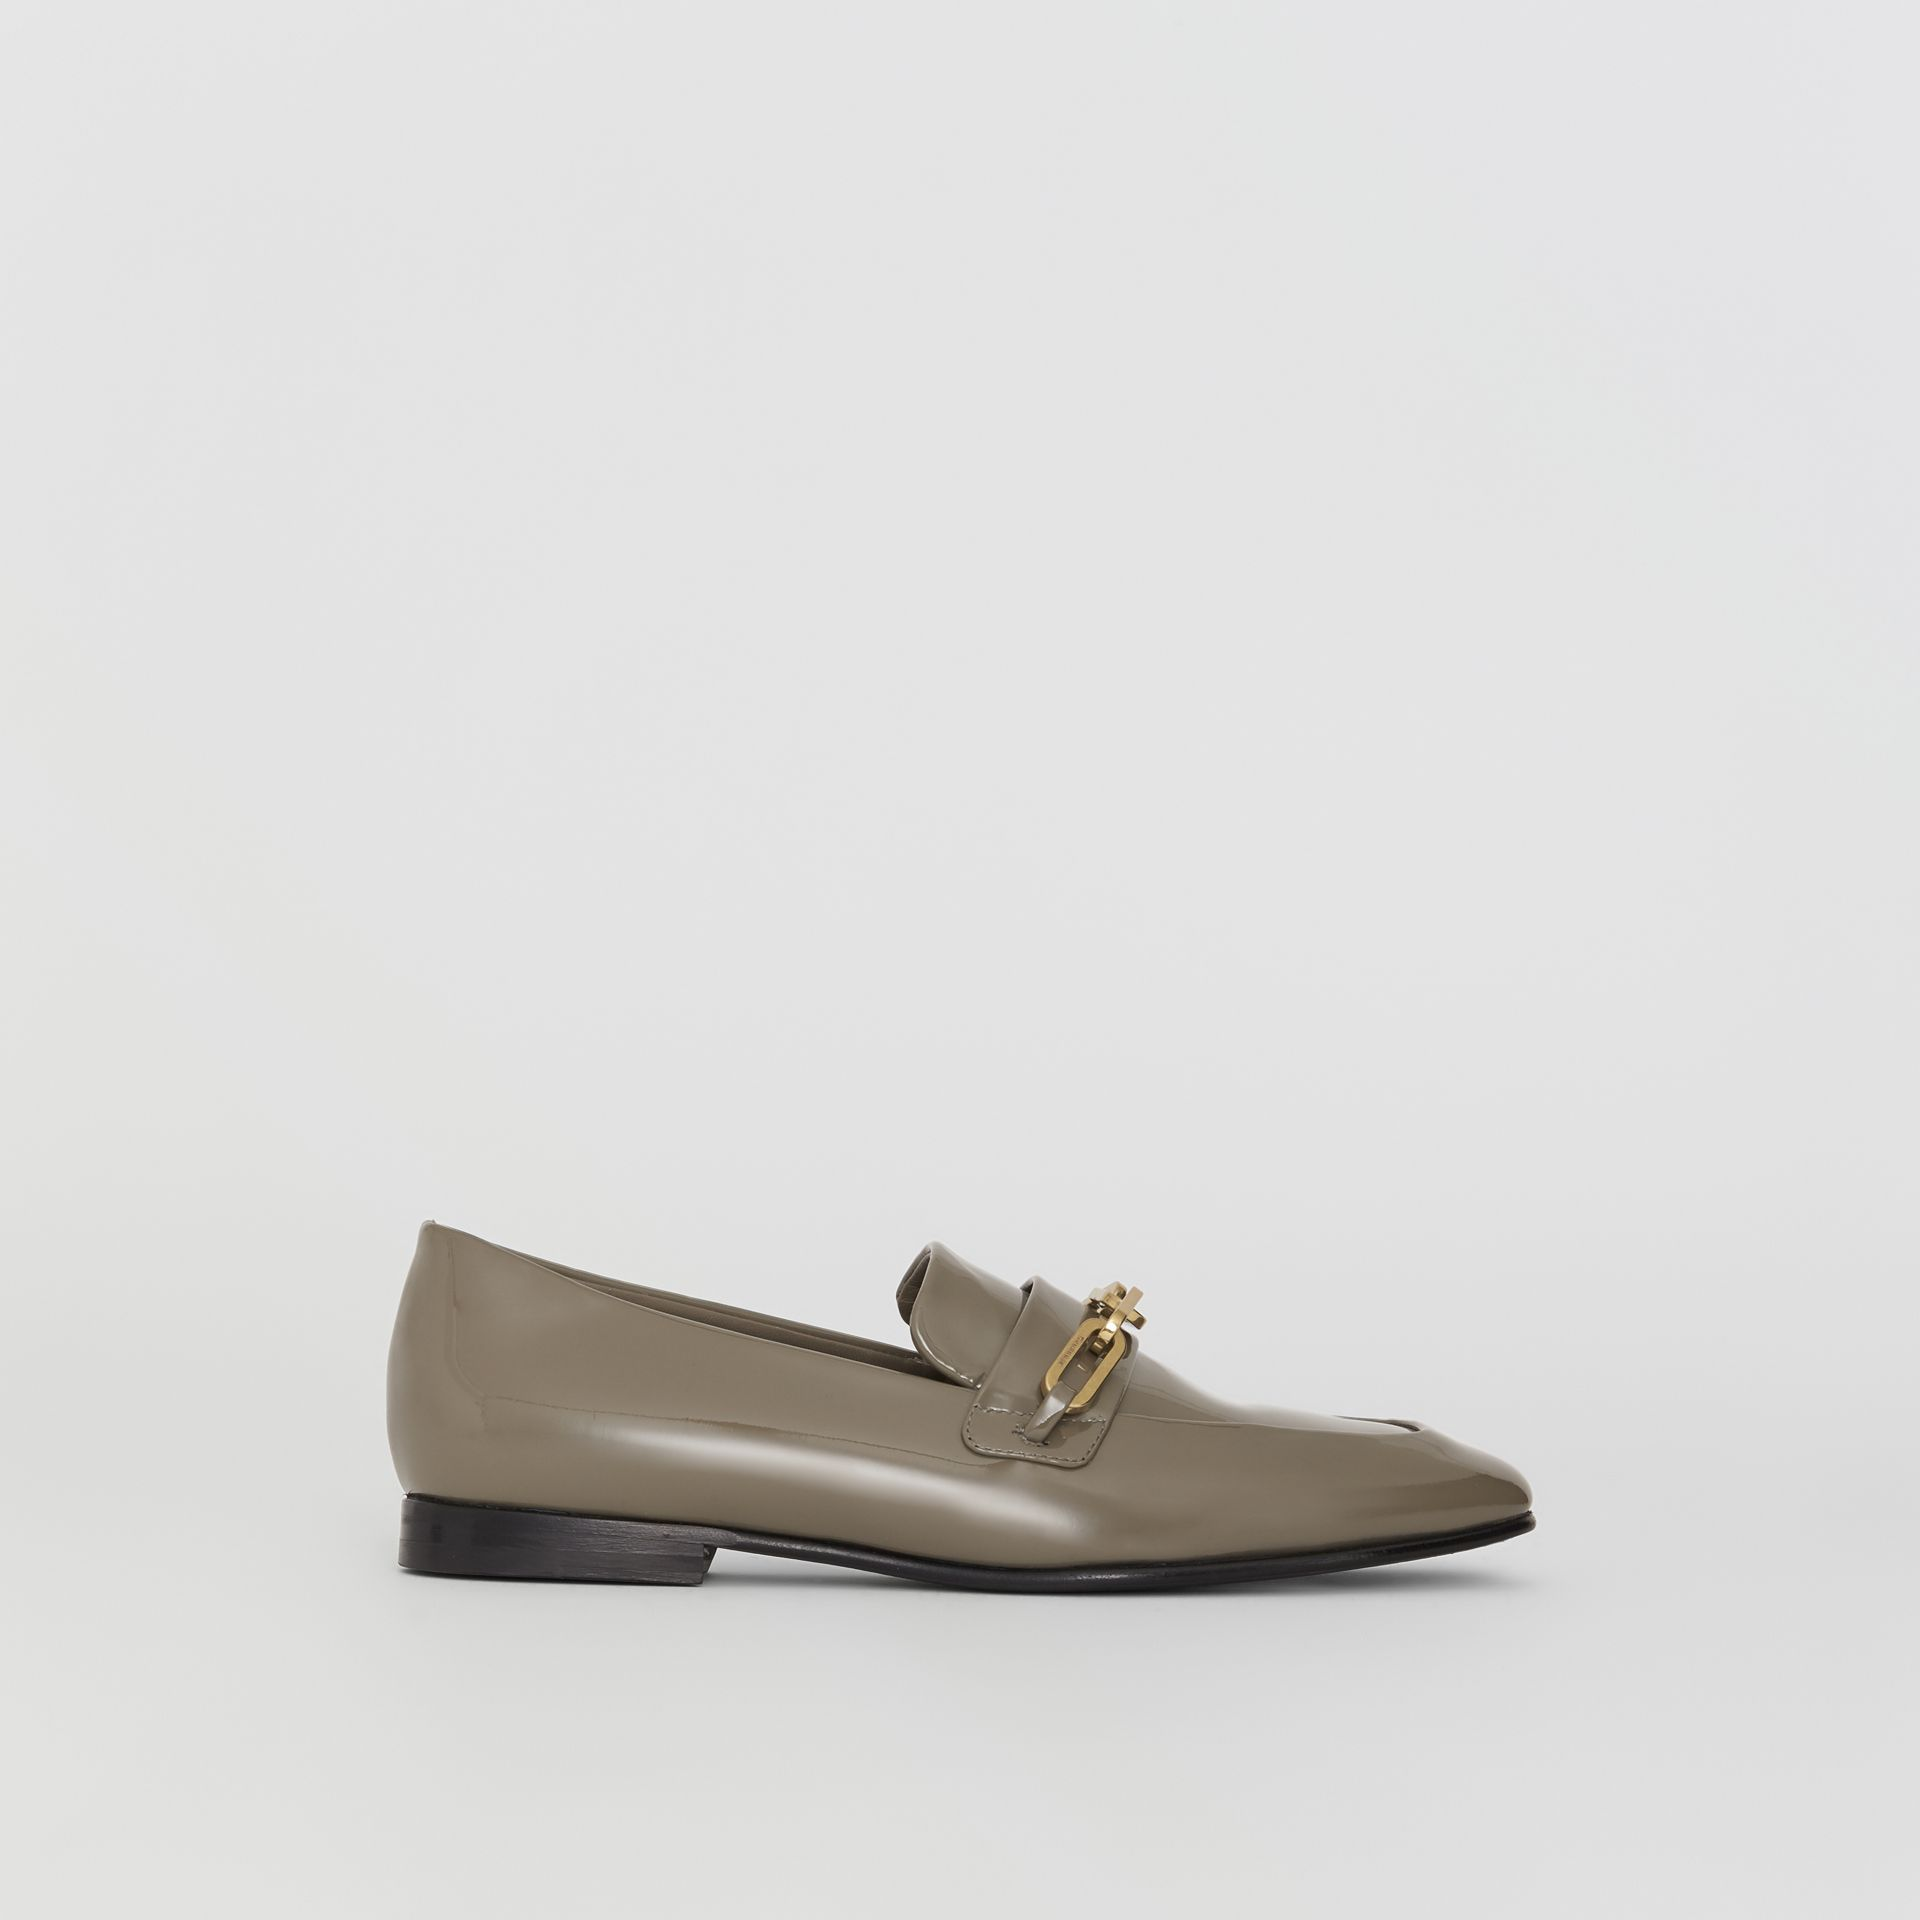 Link Detail Patent Leather Loafers in Taupe Grey - Women | Burberry Canada - gallery image 5